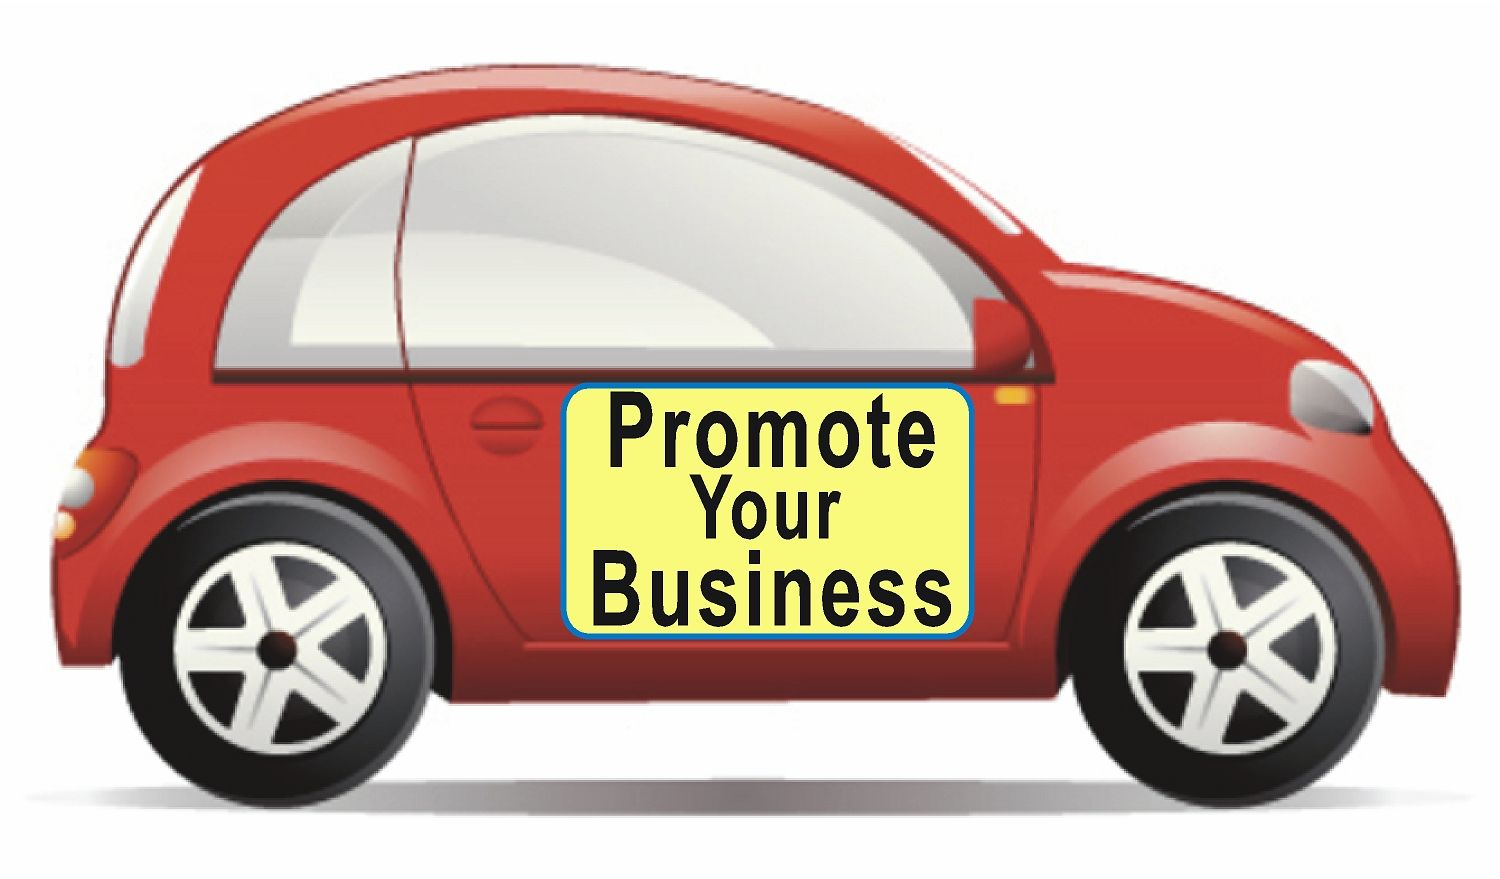 Create Design And Personalized Your Own Custom Car Magnets Online - Custom car magnets